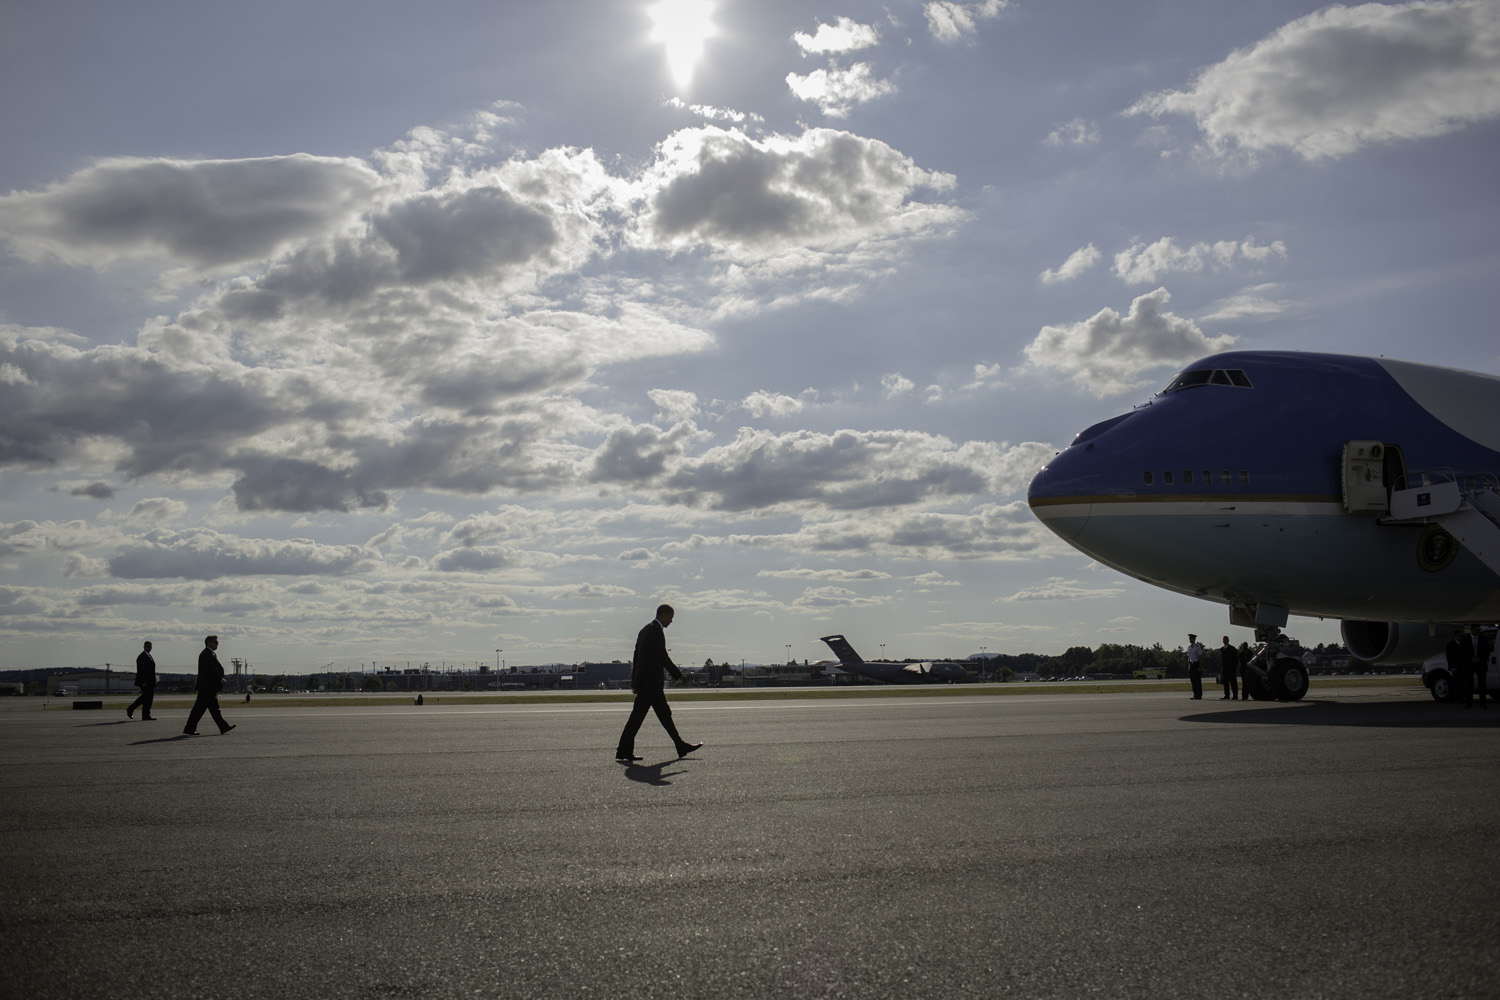 In the early evening, after a day of campaigning, President Obama walks from Marine One to Air Force One to head home.